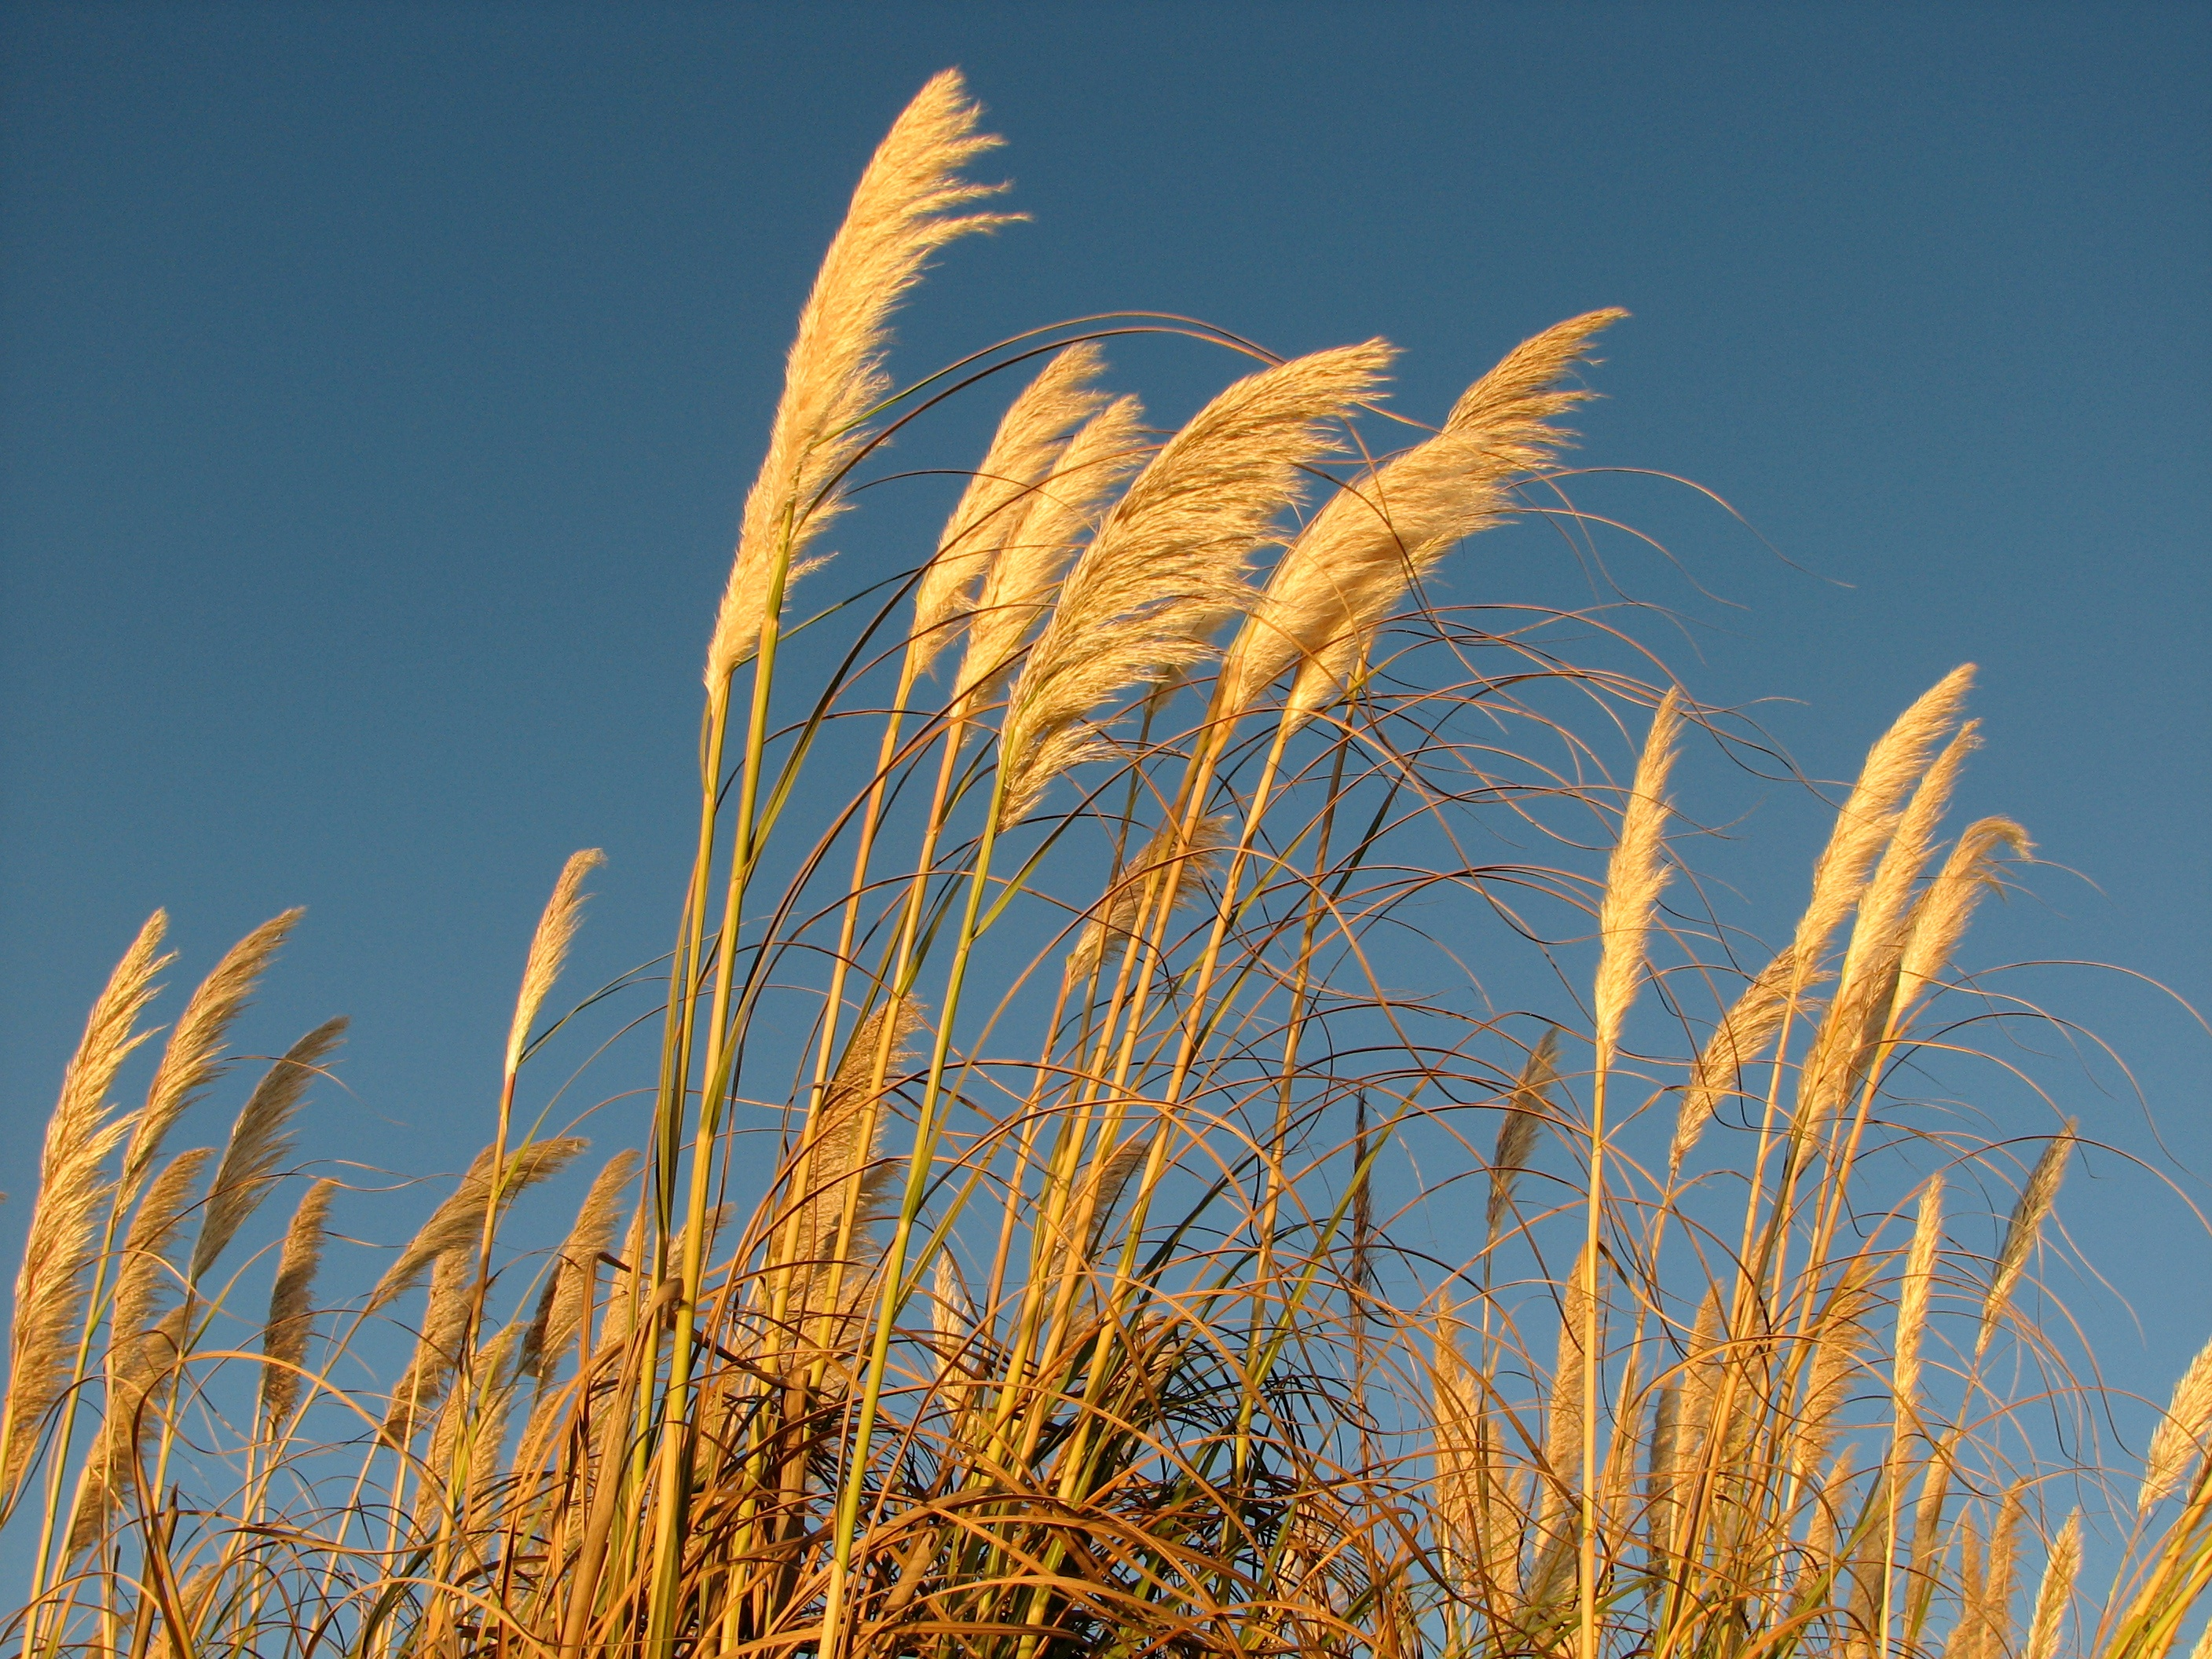 pampas grass at the beach author lucke charlie